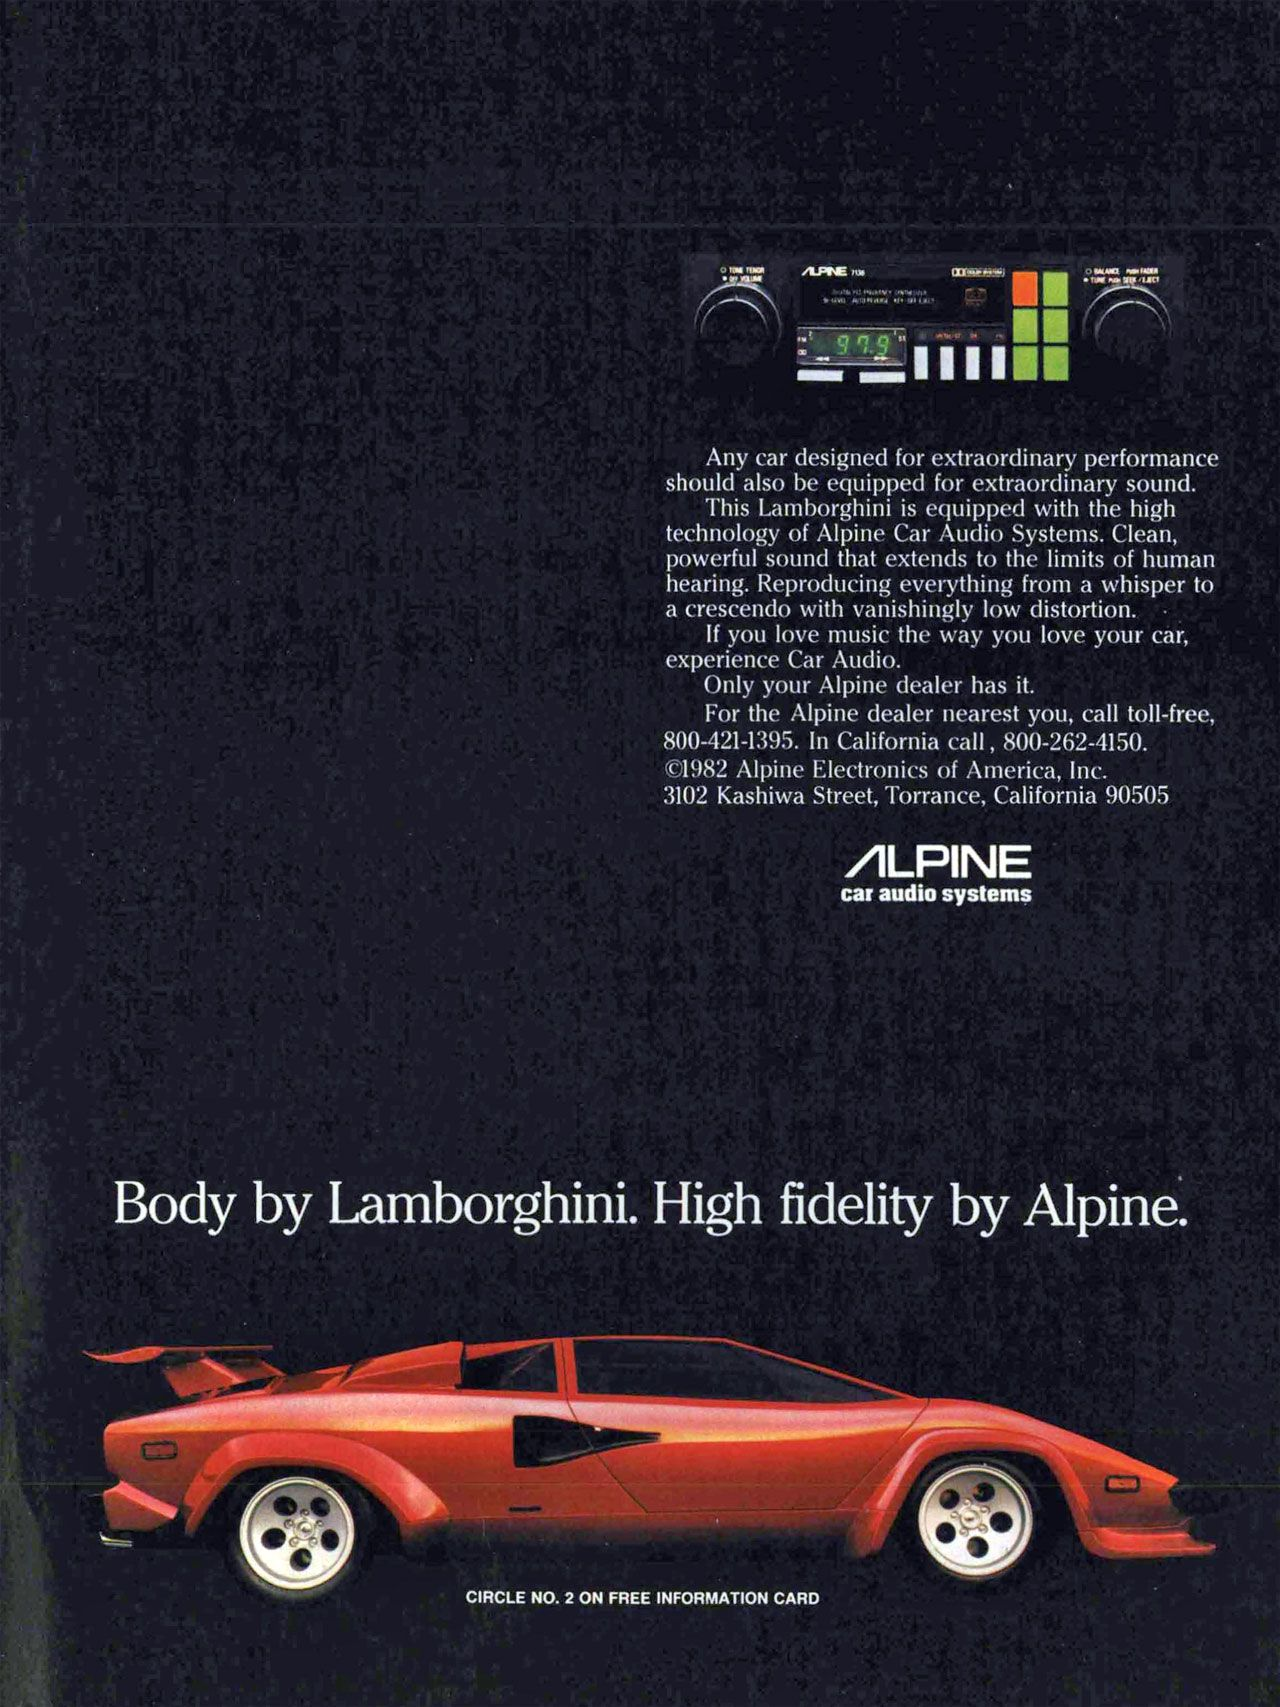 Any car designed for extraordinary performance should also be equipped for extraordinary sound. This Lamborghini is equipped with the high technology of Alpine Car Audio Systems. Clean, powerful sound that extends to the limits of human hearing. Reproducing everything from a whisper to a crescendo with vanishingly low distortion. If you love music the way you love your car, experience Car Audio. Only your Alpine dealer has it. For the Alpine dealer nearest you, call toll-free, 800-421-1395. In California call , 800-262-4150. ©1982 Alpine Electronics of America, Inc. 3102 Kashiwa Street, Torrance, California 90505  ALPINE  car audio systems  Body by Lamborghini. High fidelity by Alpine.